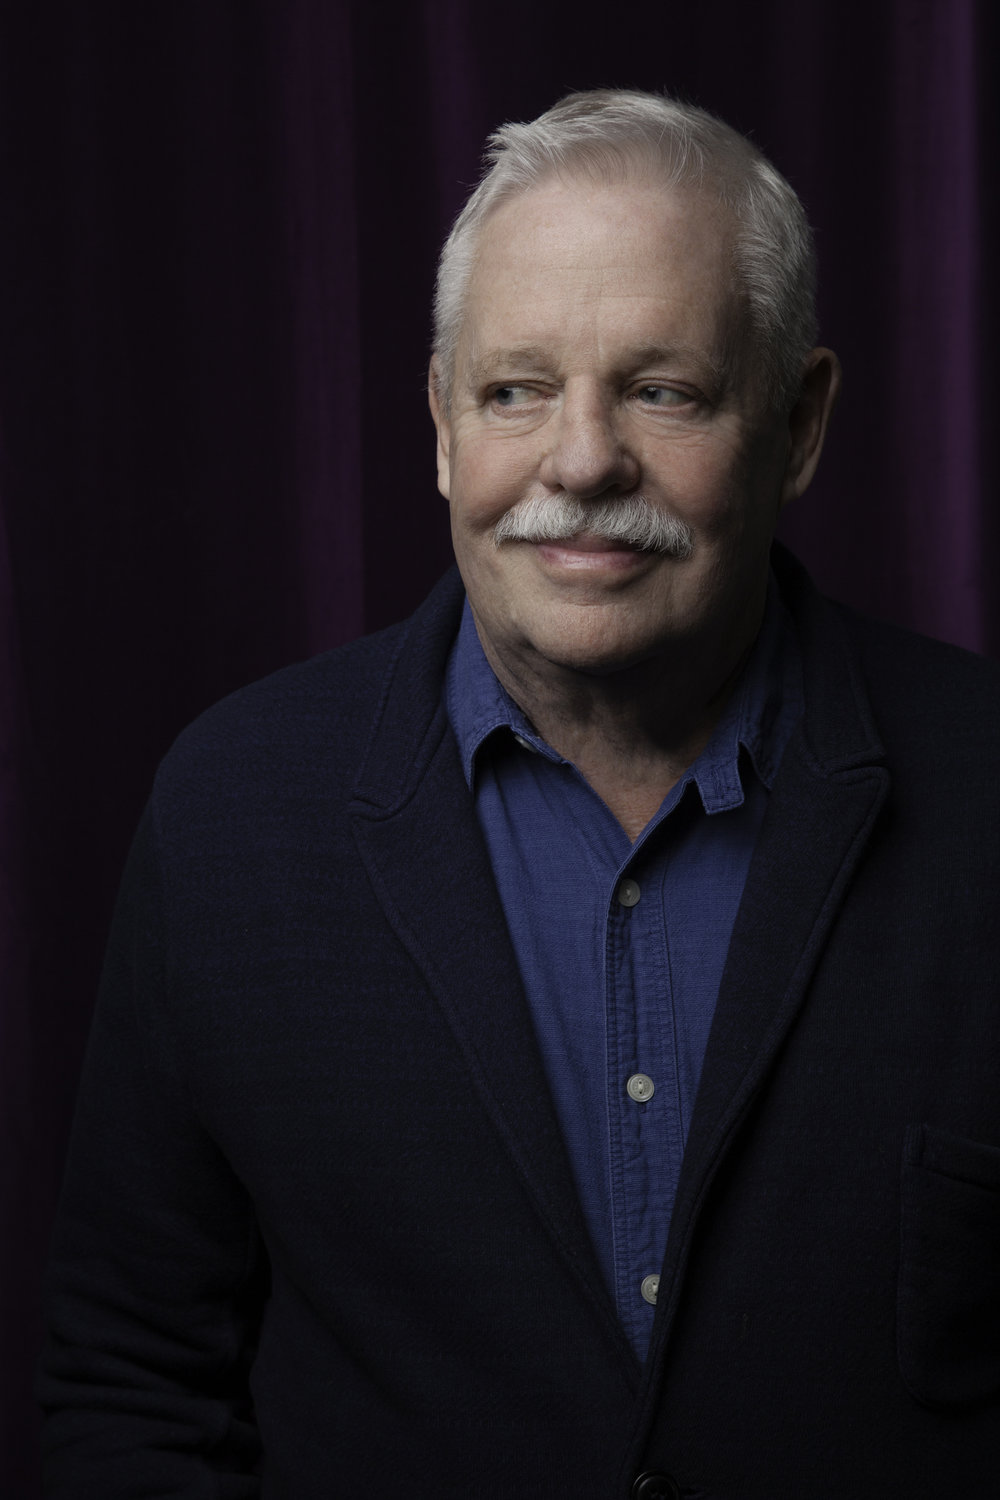 Author Armistead Maupin, Kaleidoscope Career Achievement in Literature Award